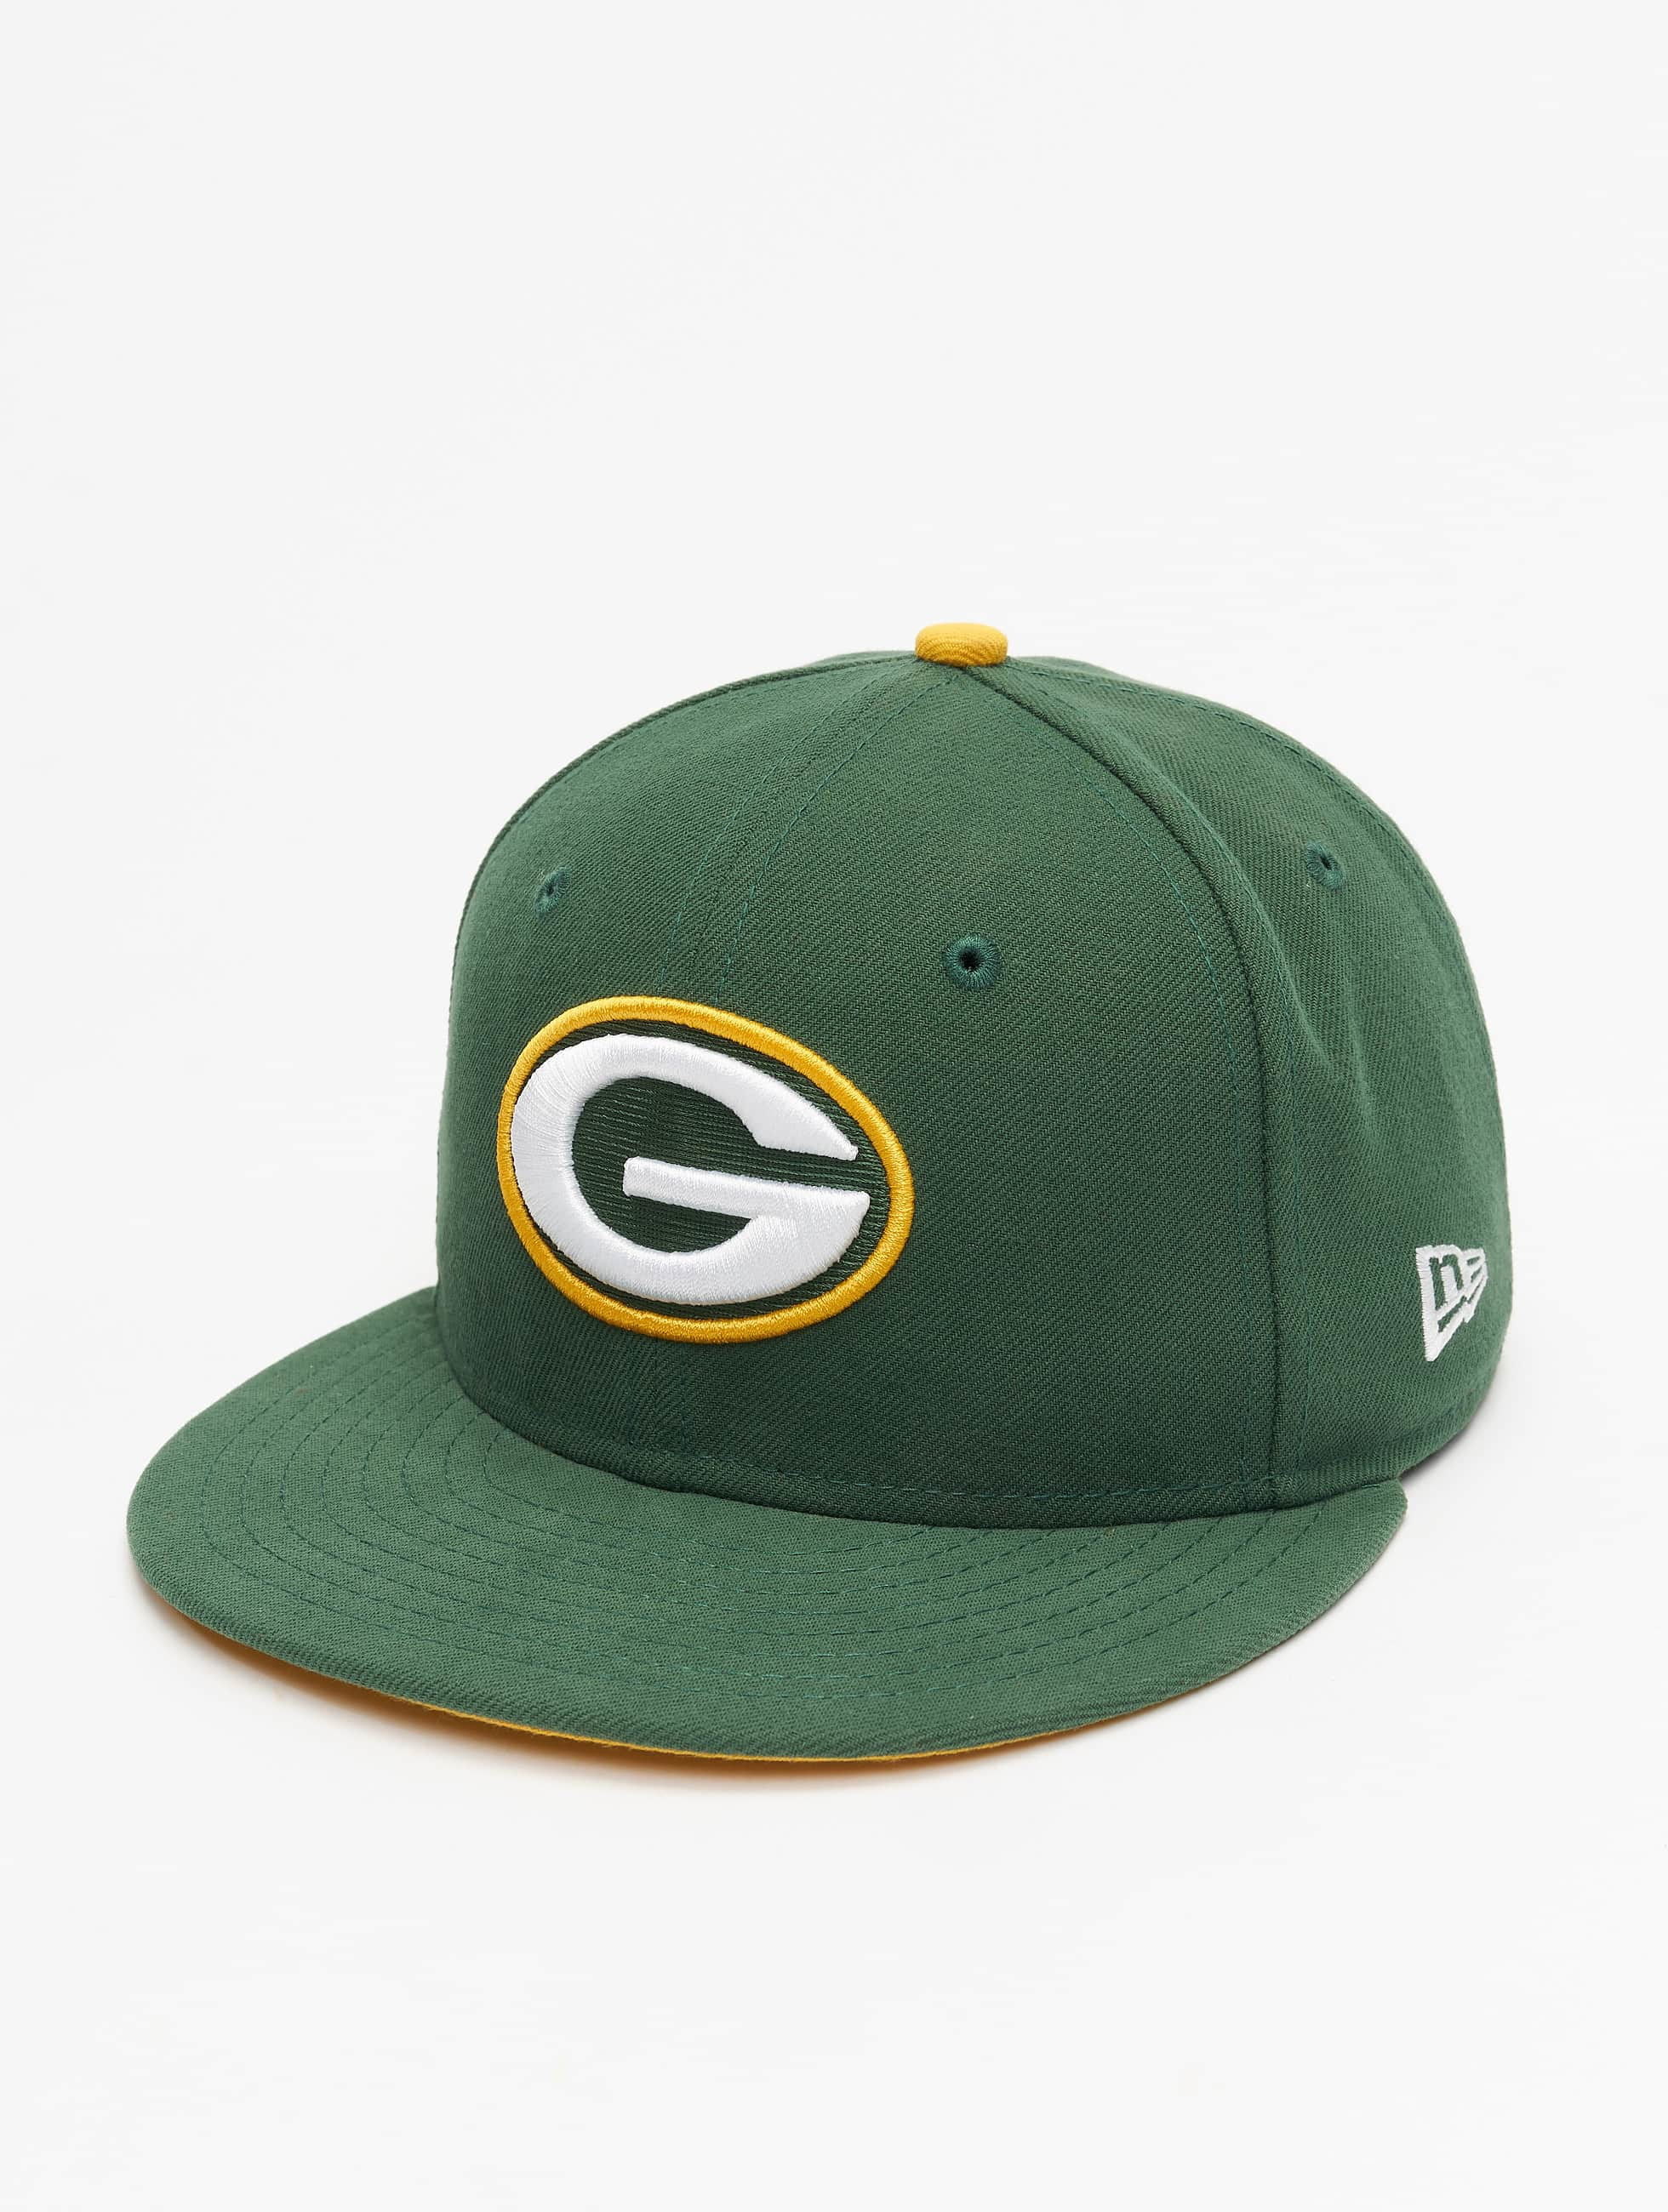 New Era Männer,Frauen Fitted Cap NFL On Field Green Bay Packers 59Fifty in grün